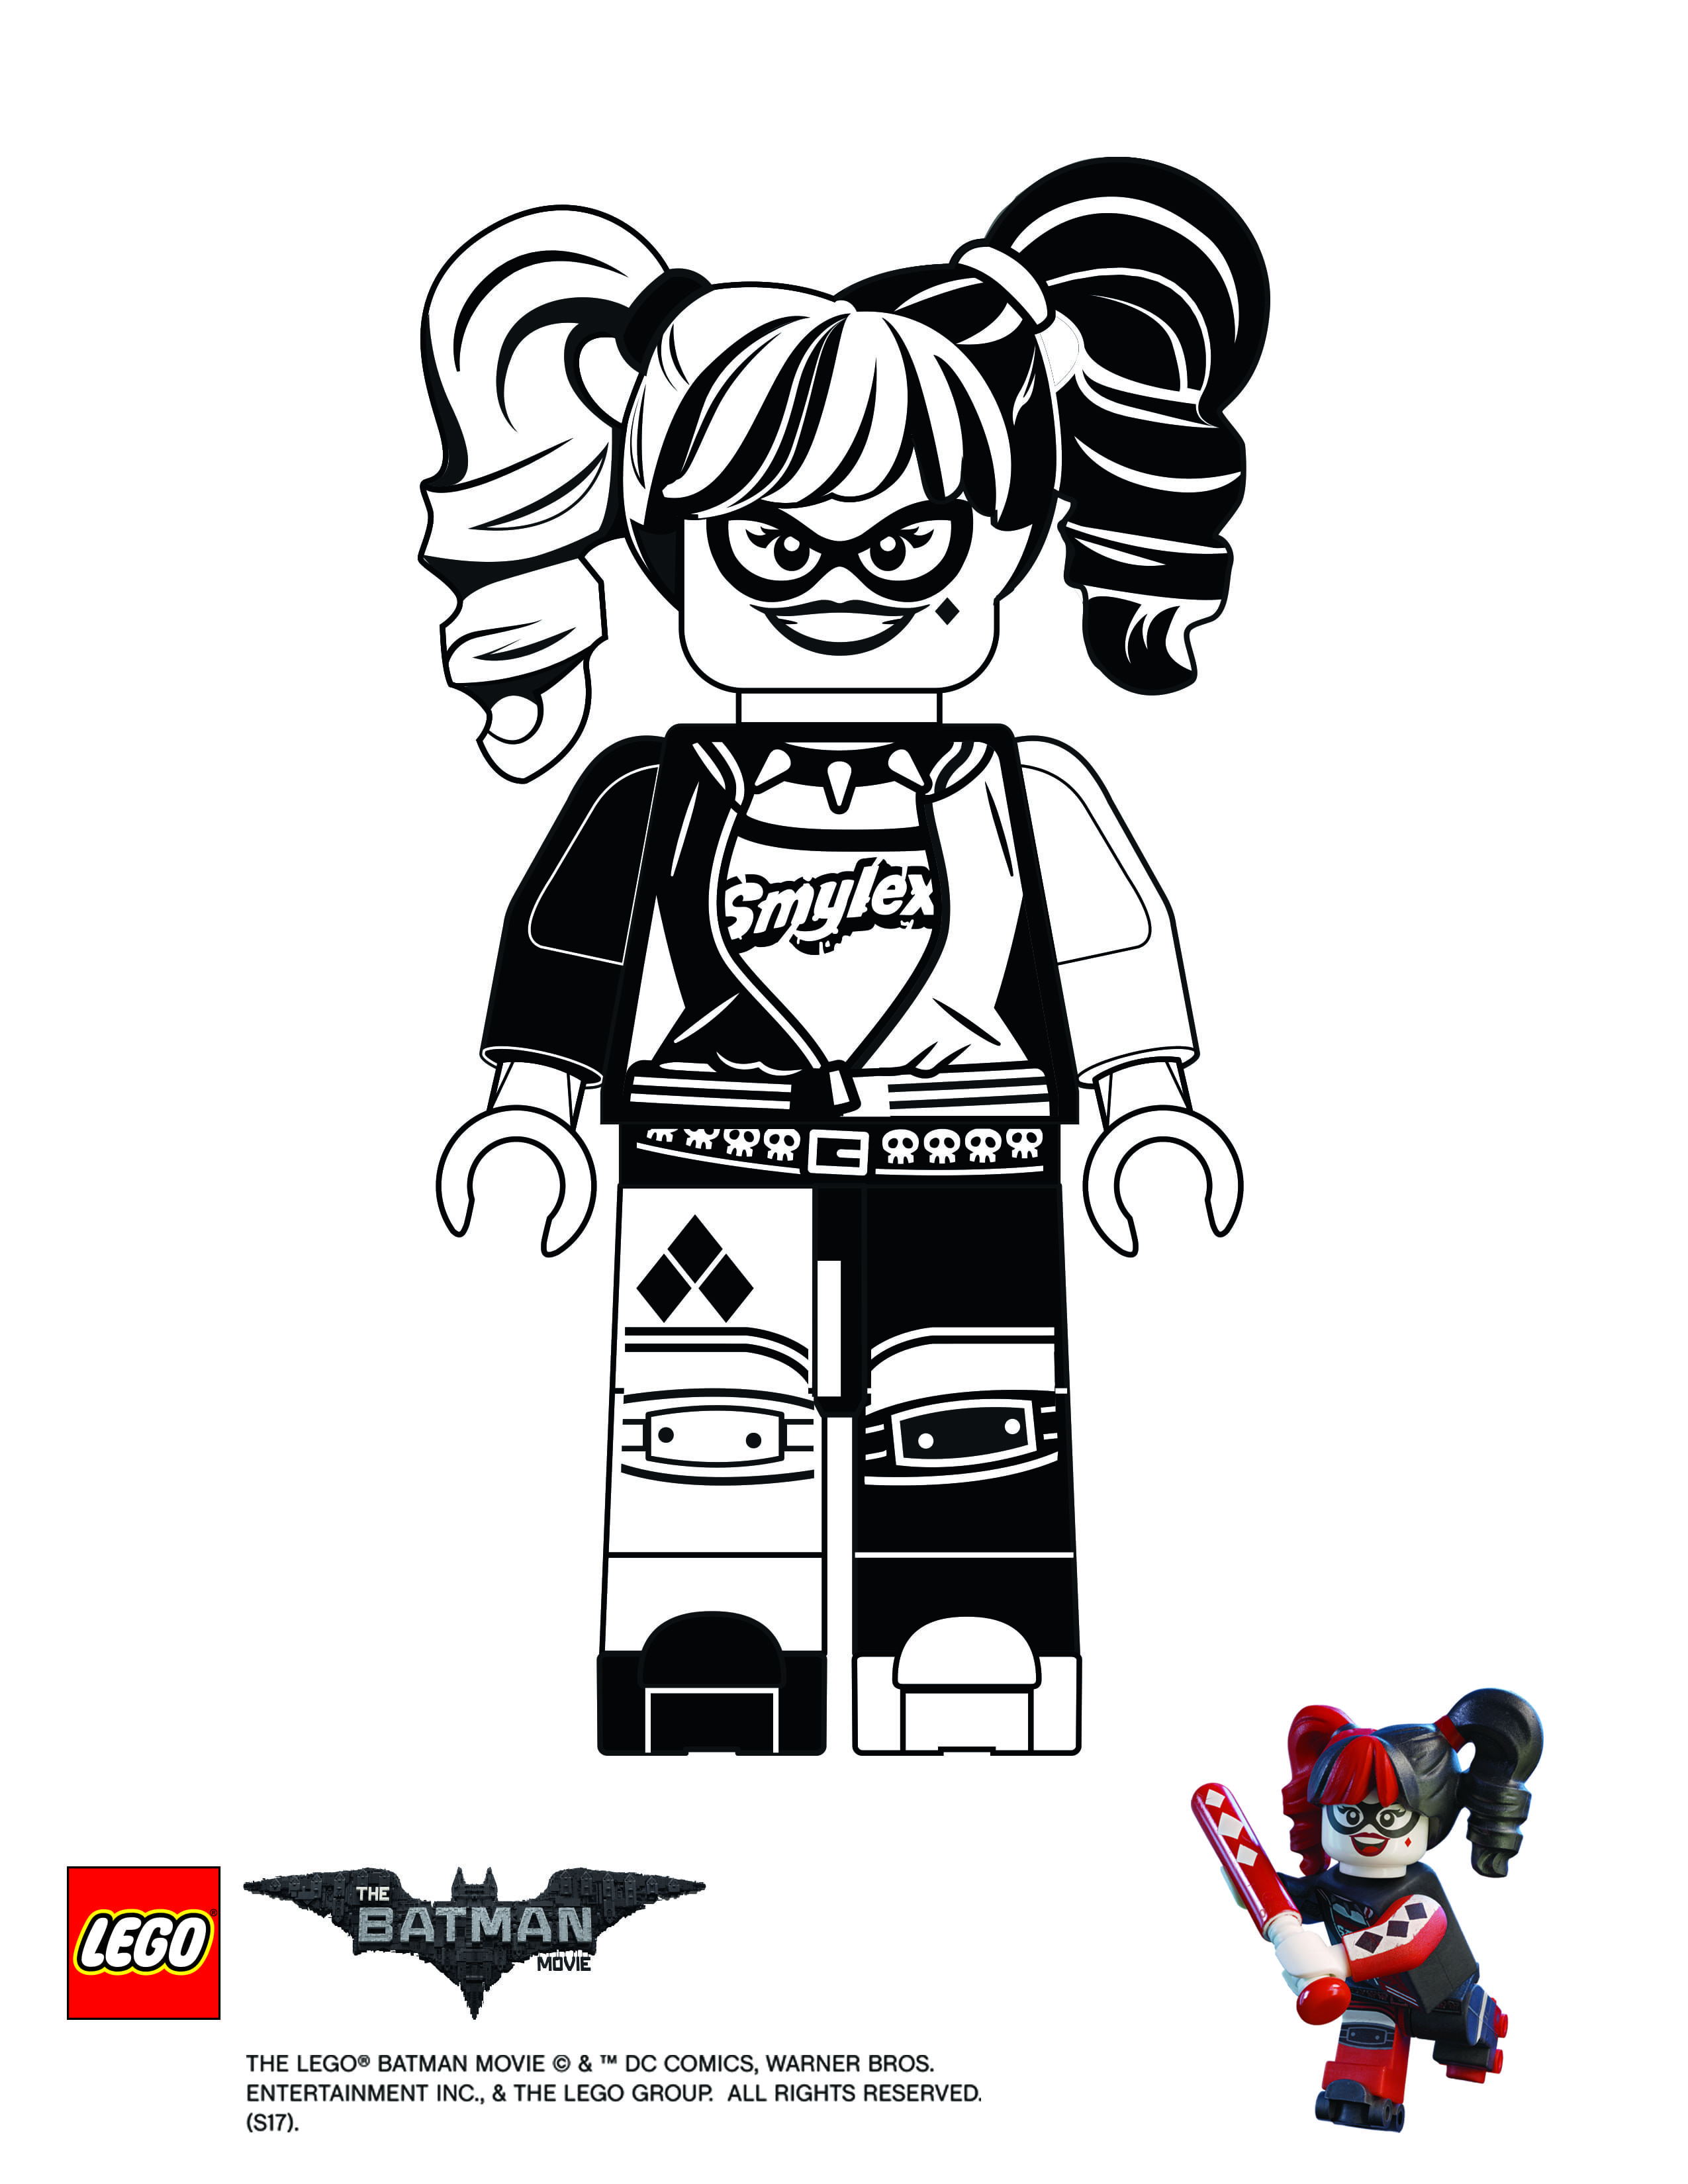 Printable coloring pages lego batman - Harley Quinn Batman Lego Movie Coloring Pages Printable And Coloring Book To Print For Free Find More Coloring Pages Online For Kids And Adults Of Harley